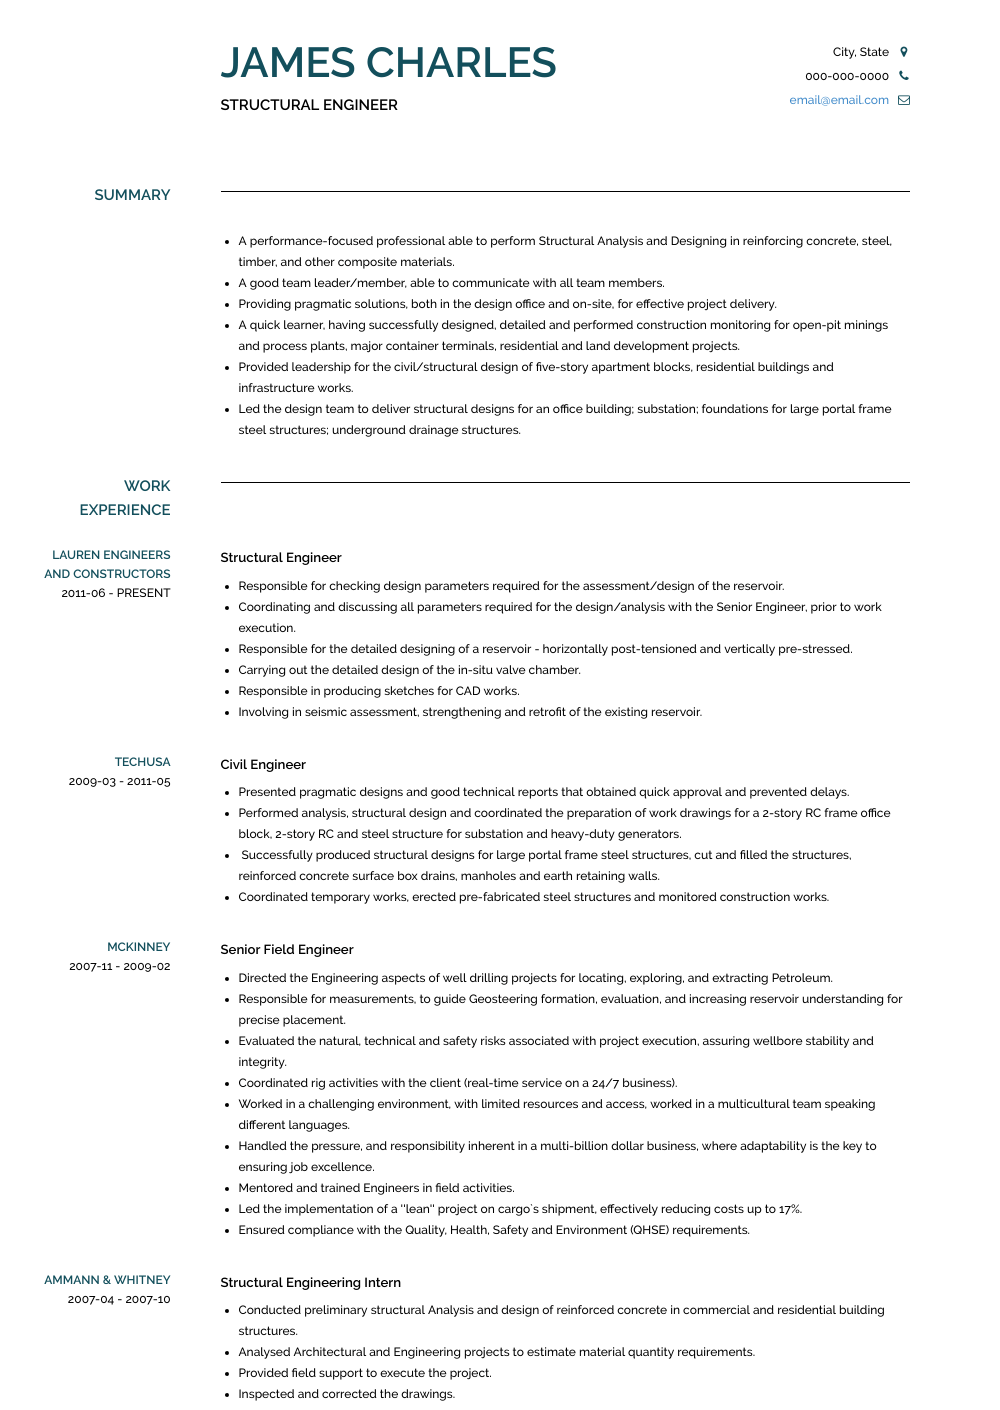 resume template for structural engineer